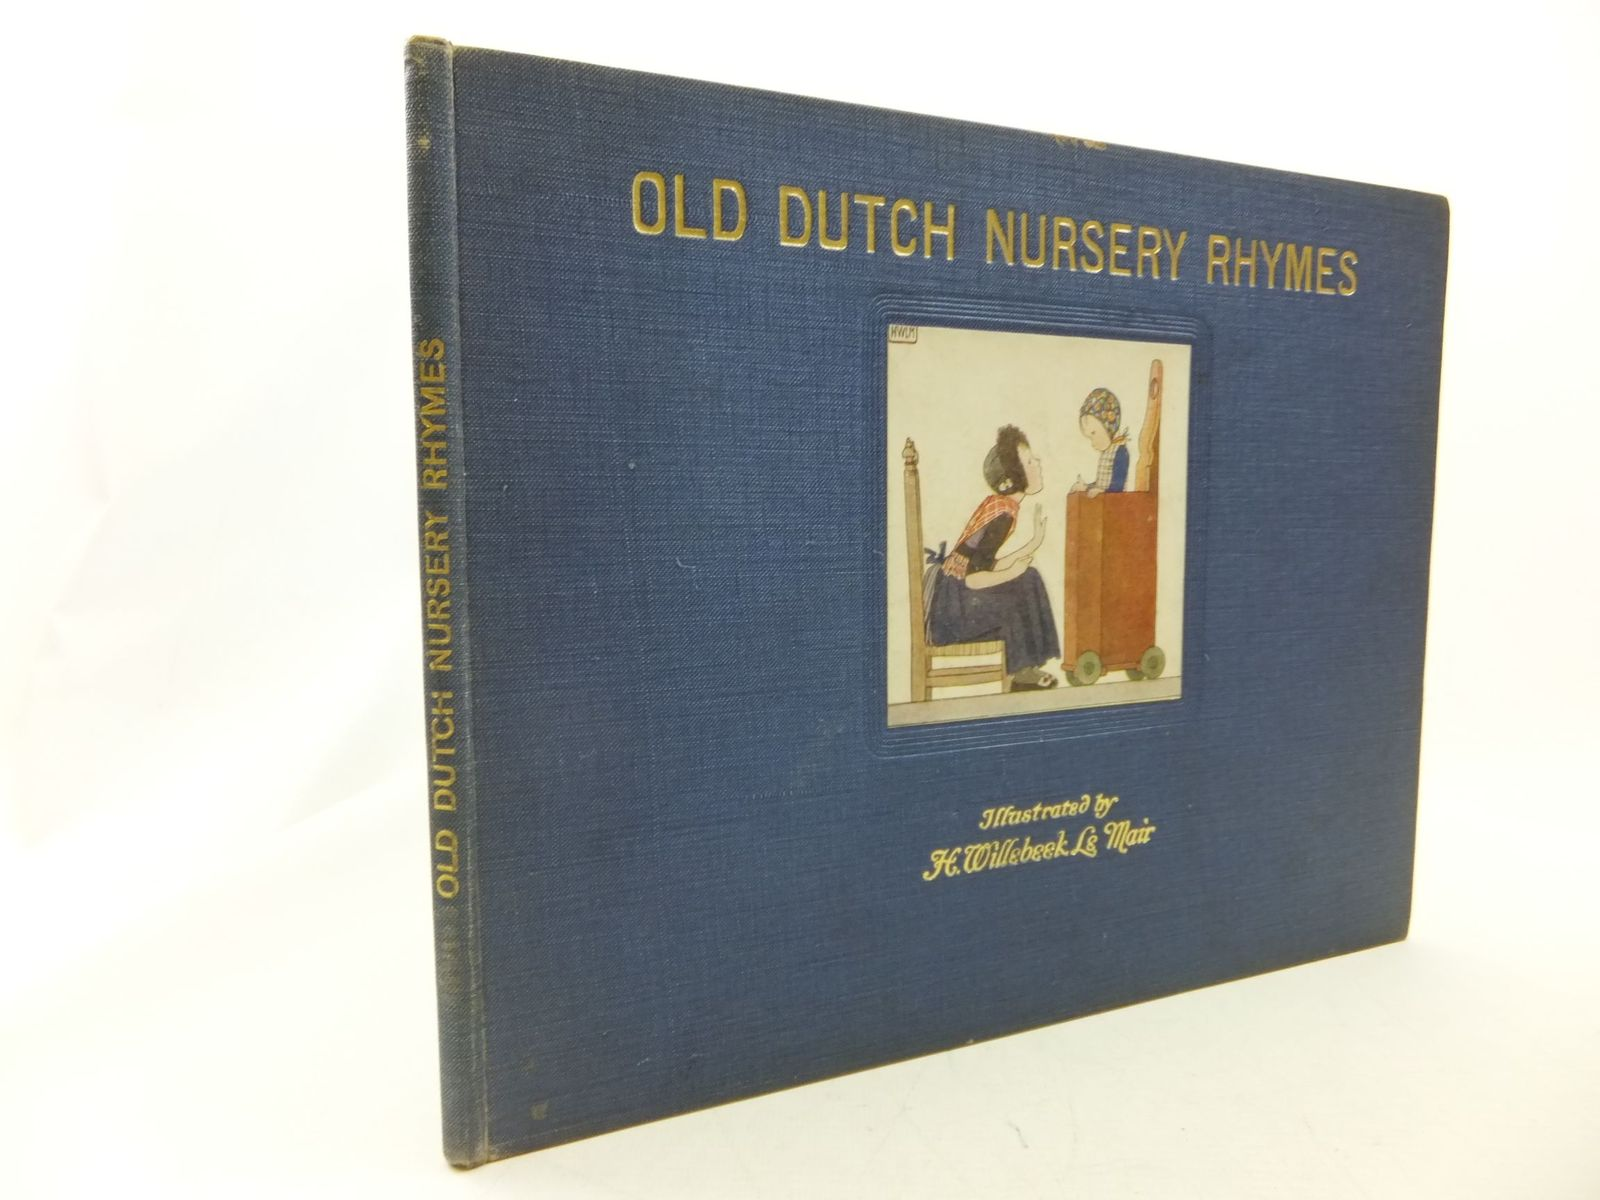 Photo of OLD DUTCH NURSERY RHYMES written by Rontgen, J.<br />Elkin, R.H. illustrated by Willebeek Le Mair, Henriette published by Augener Ltd. (STOCK CODE: 2114540)  for sale by Stella & Rose's Books